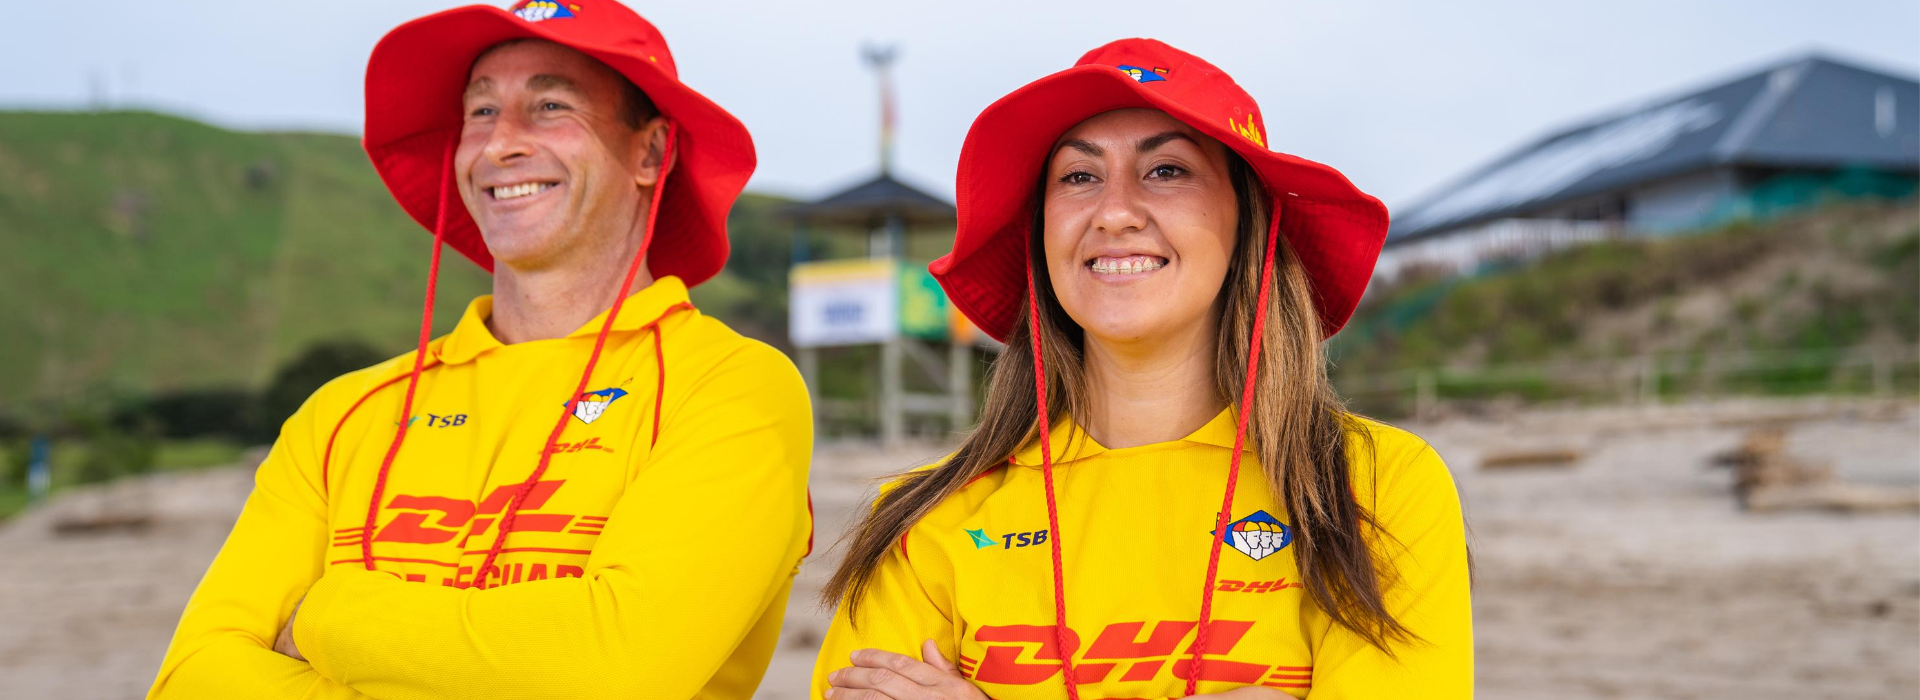 Male Female Surf Lifeguards Smiling Happy Faces 3